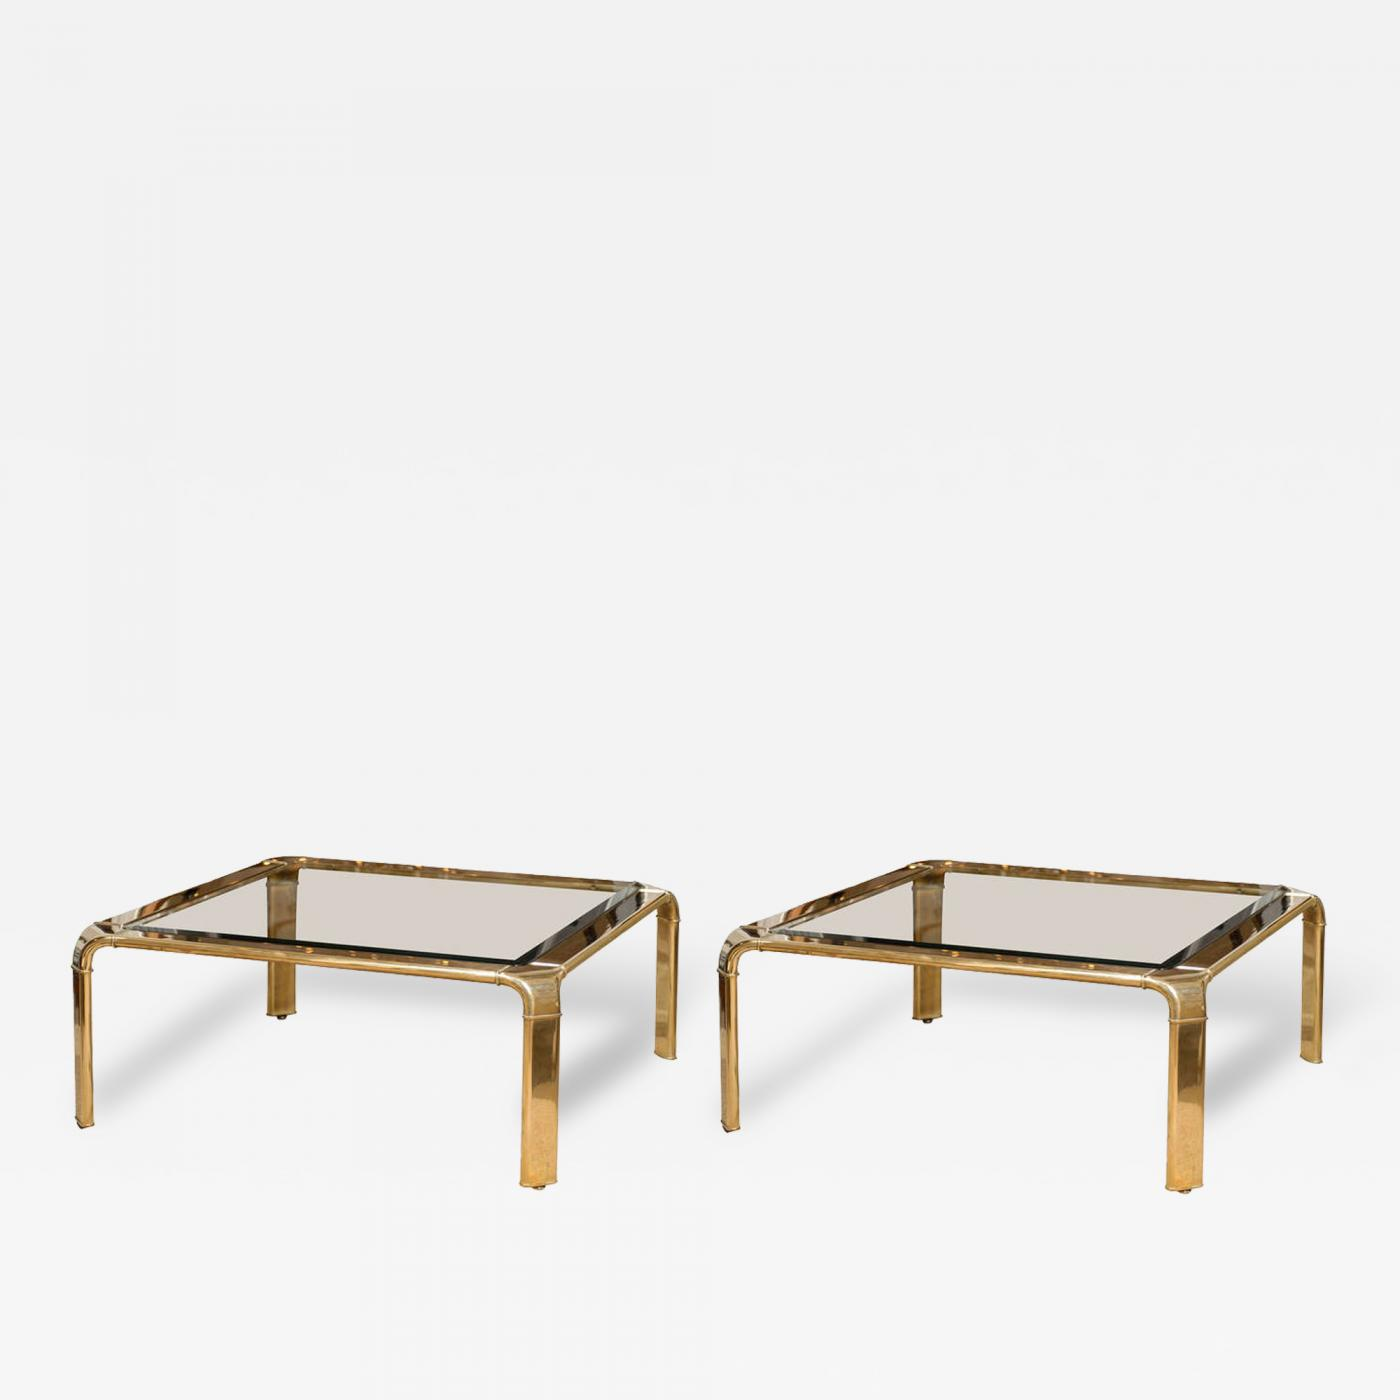 John Widdi b Stunning Widdi b Brass Coffee Table with